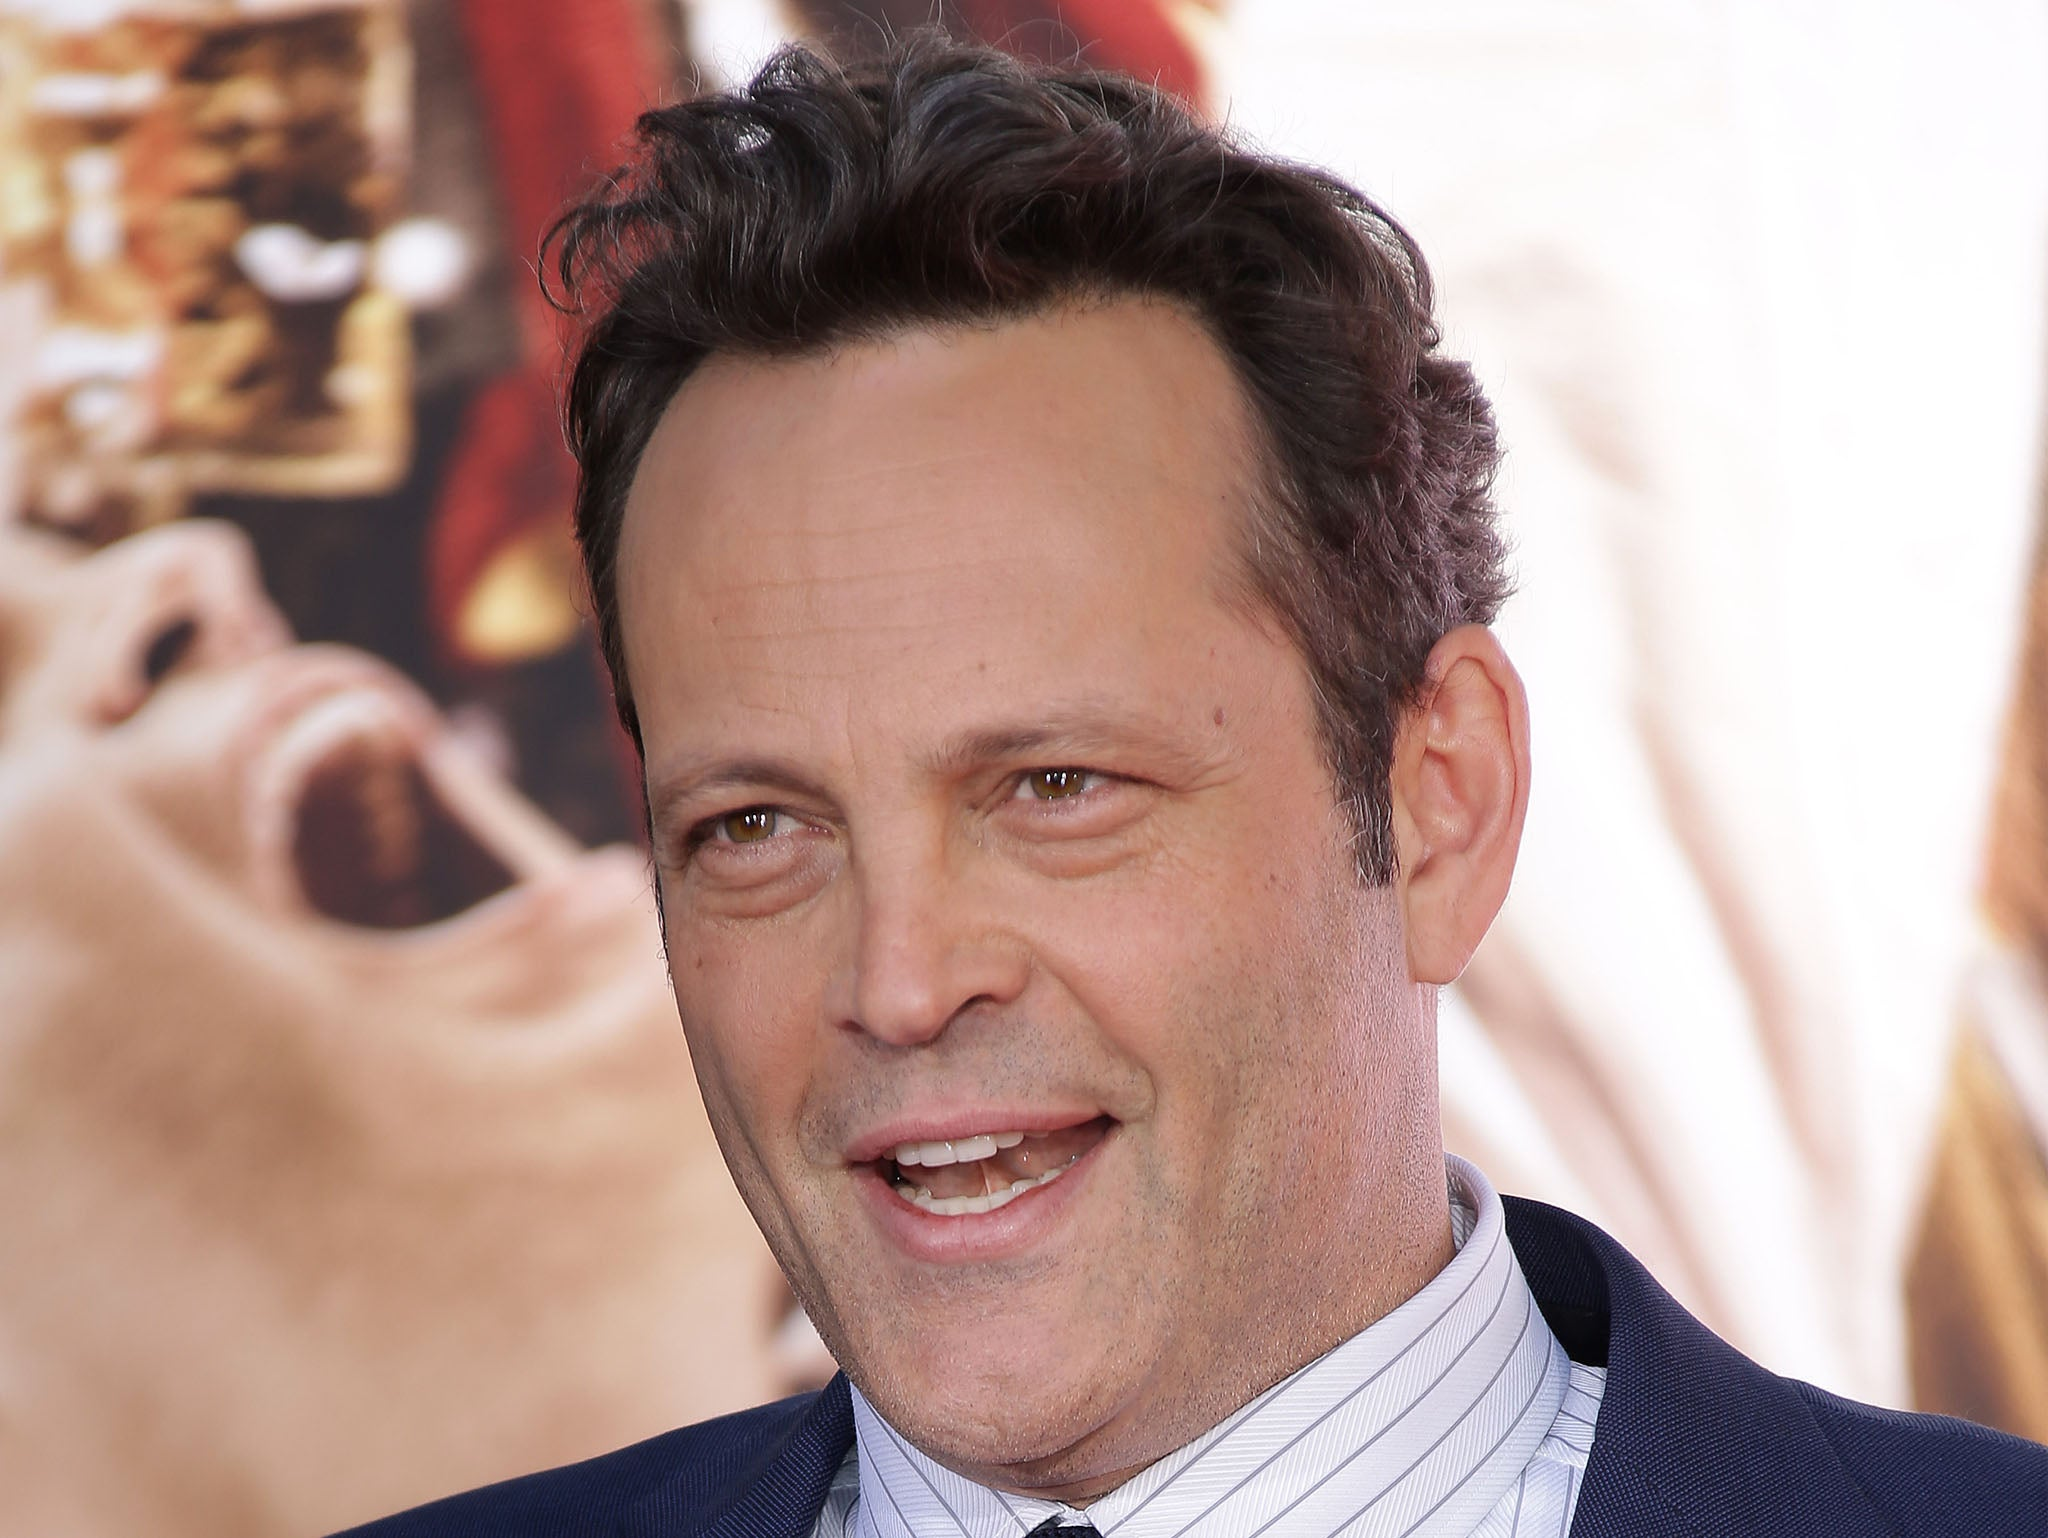 Vince Vaughn insists guns should be allowed in schools, likens banning firearms to boycotting forks to 'stop making people fat'